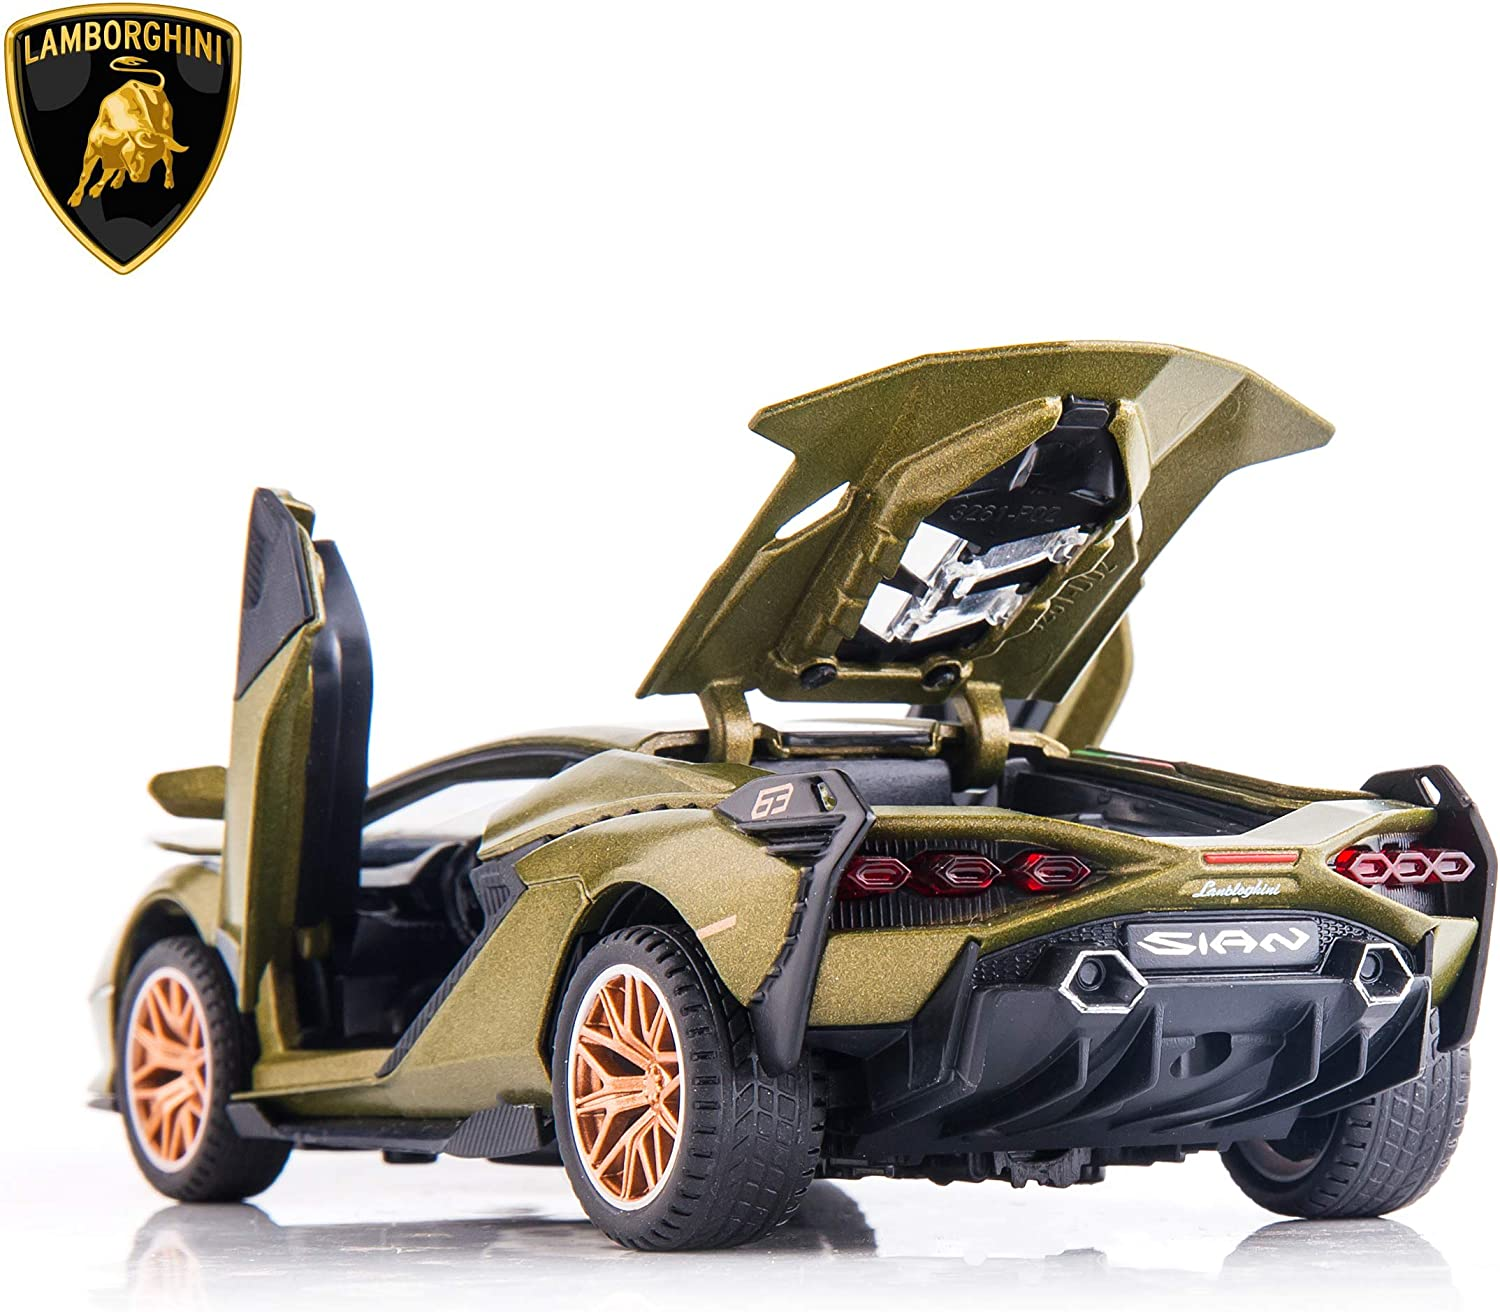 1:32 Lamborghini Sian fkp 37 Alloy Diecast Model Car Toy Collection Gift